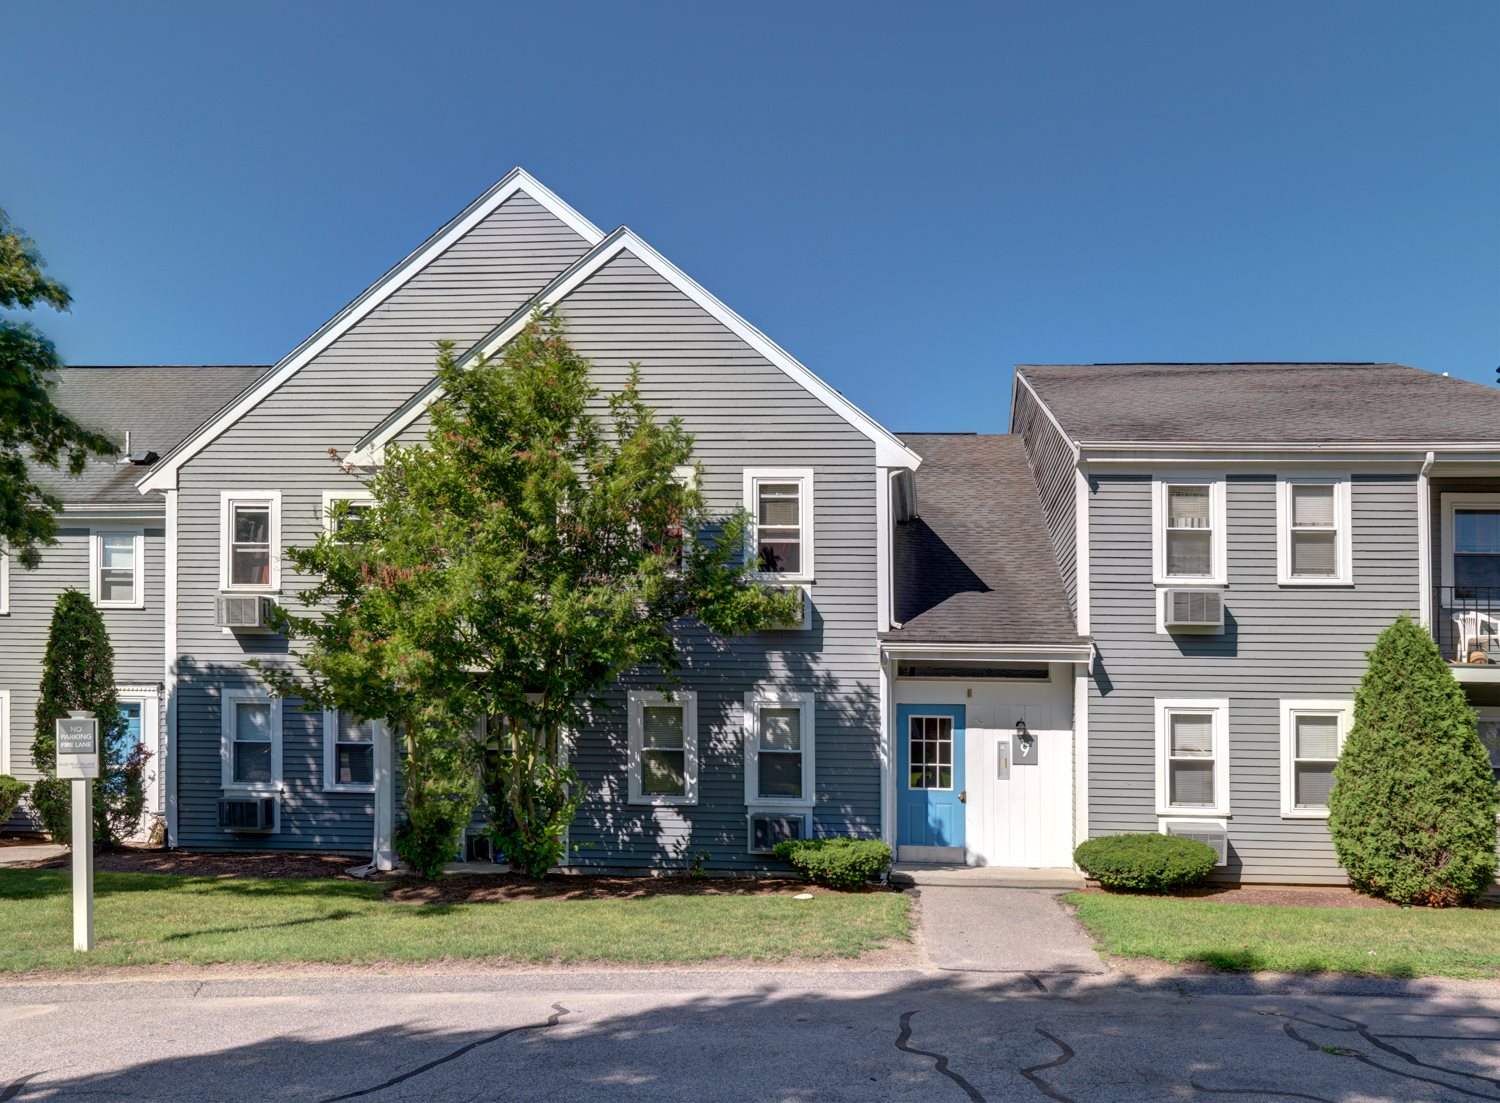 Townhouse style apartments at Blue Hills Village in Canton, MA